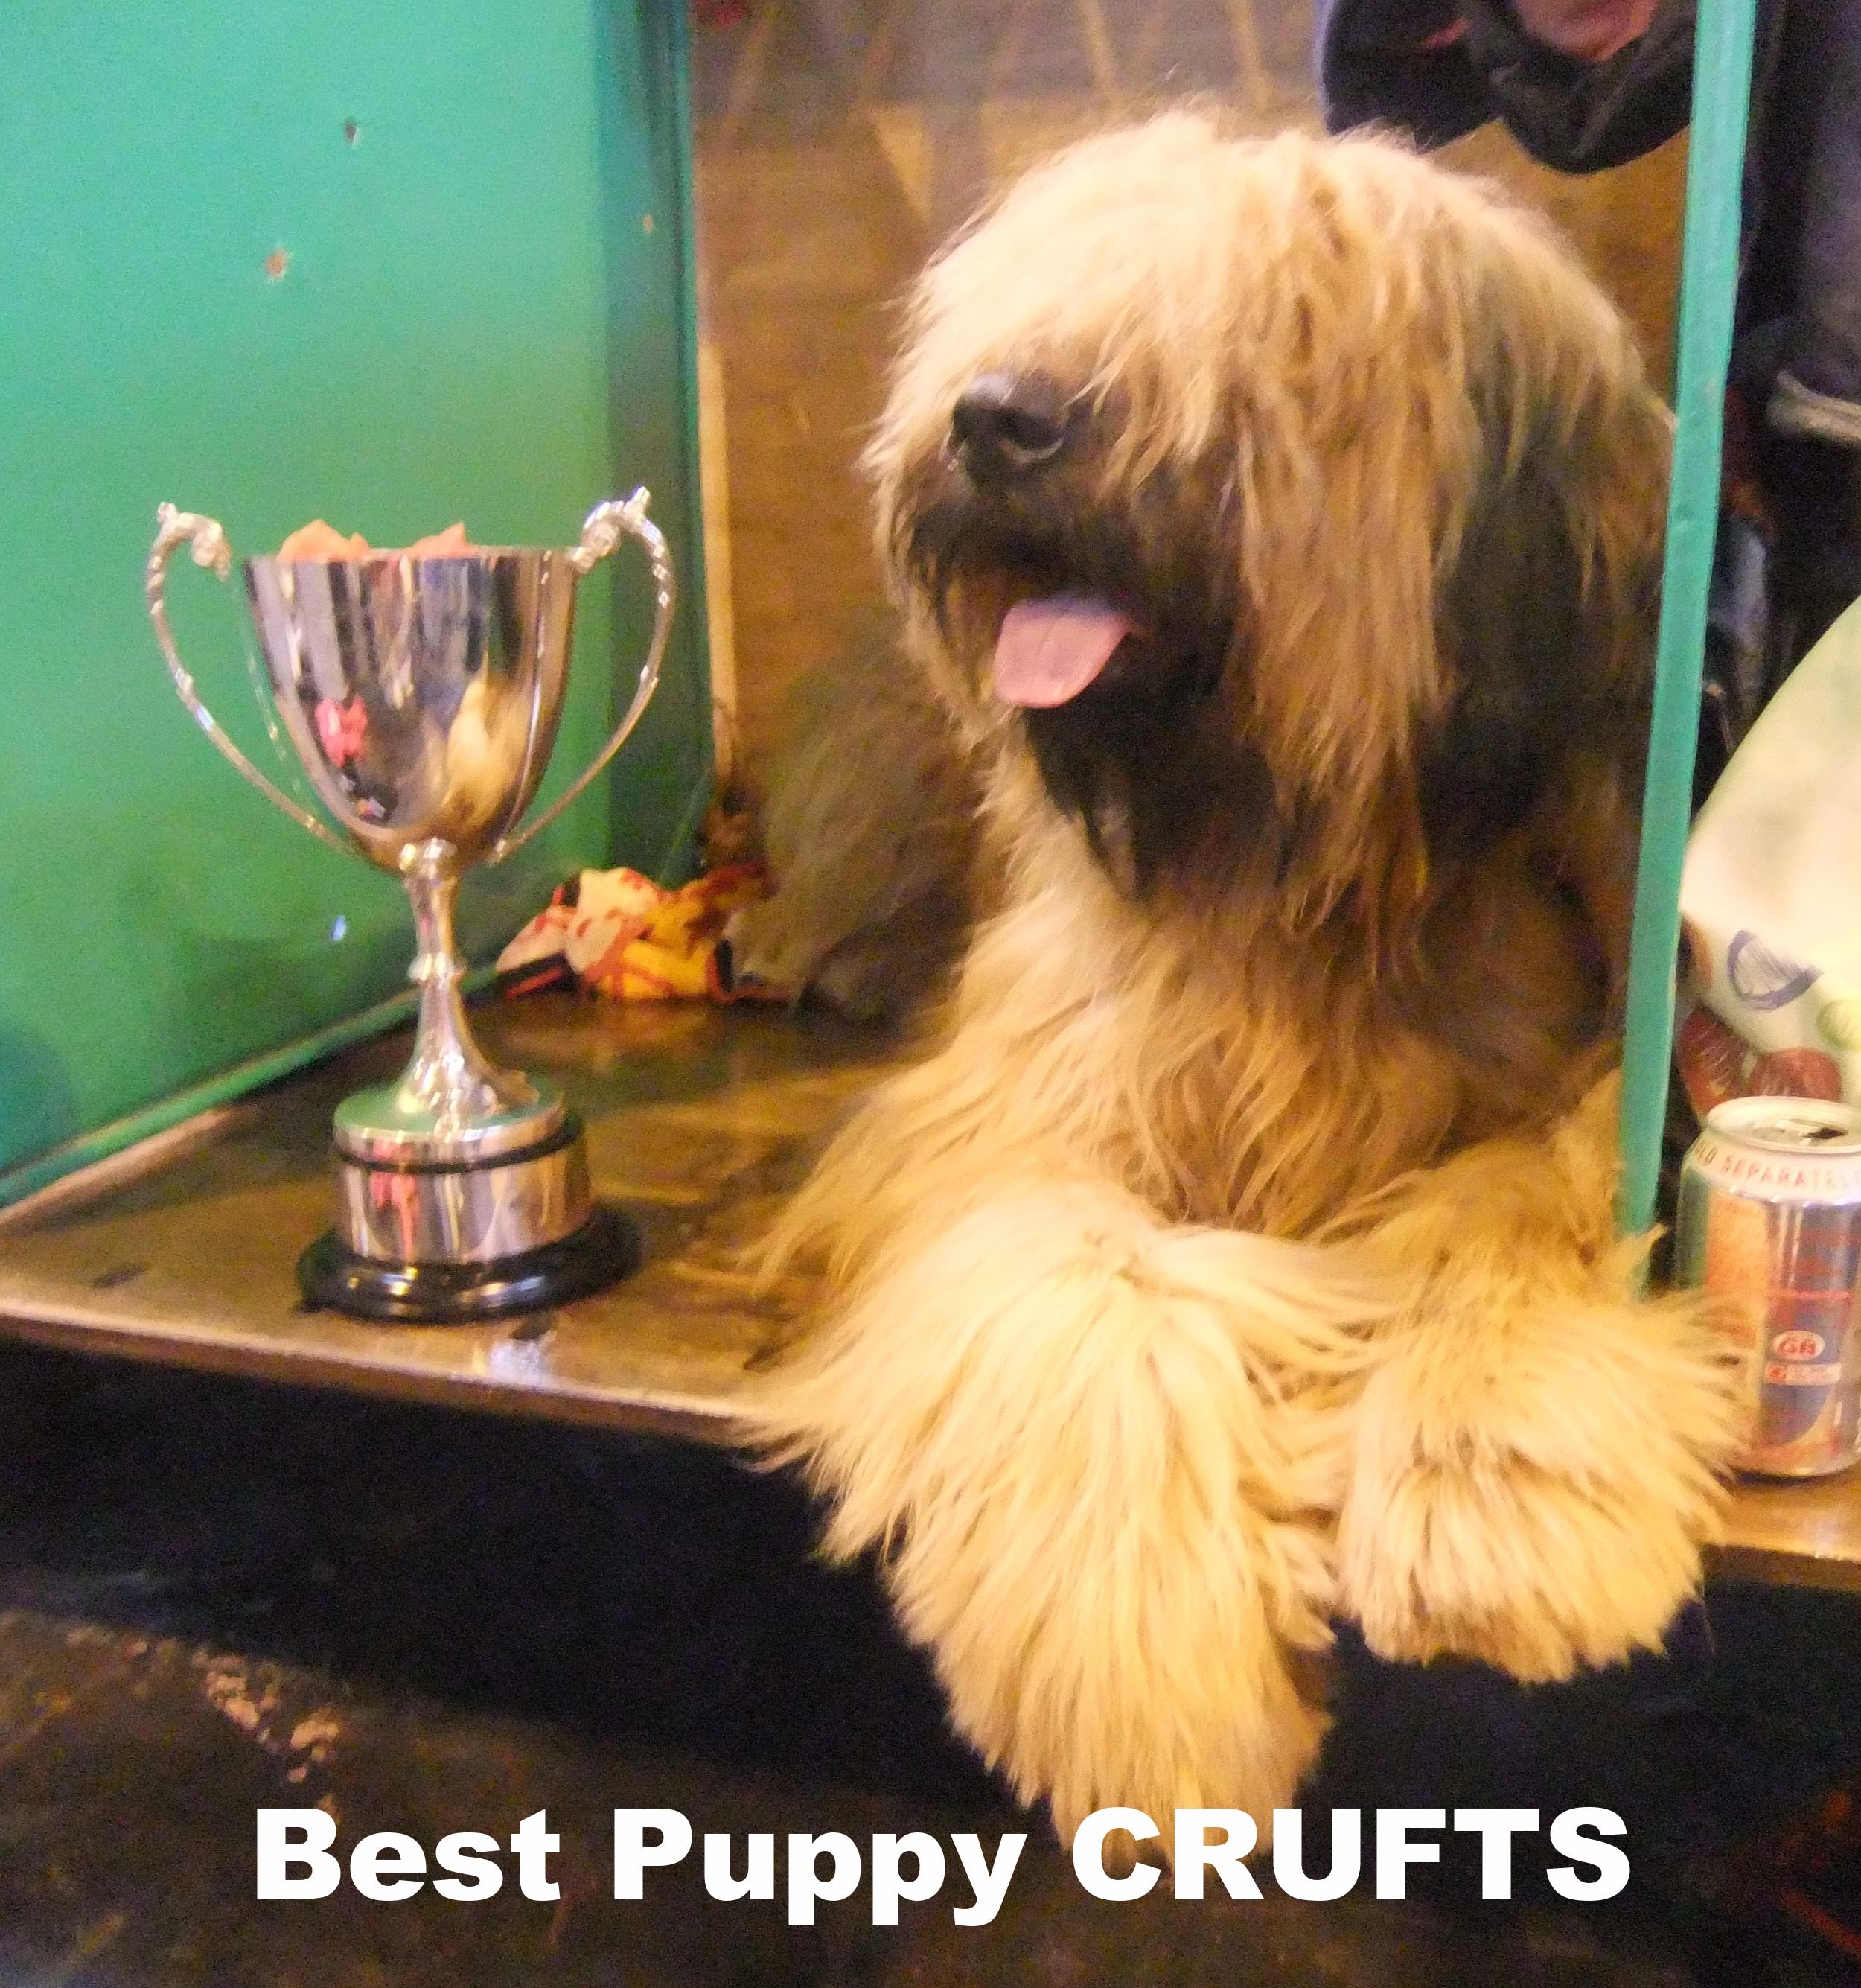 Best Puppy Crufts.JPG